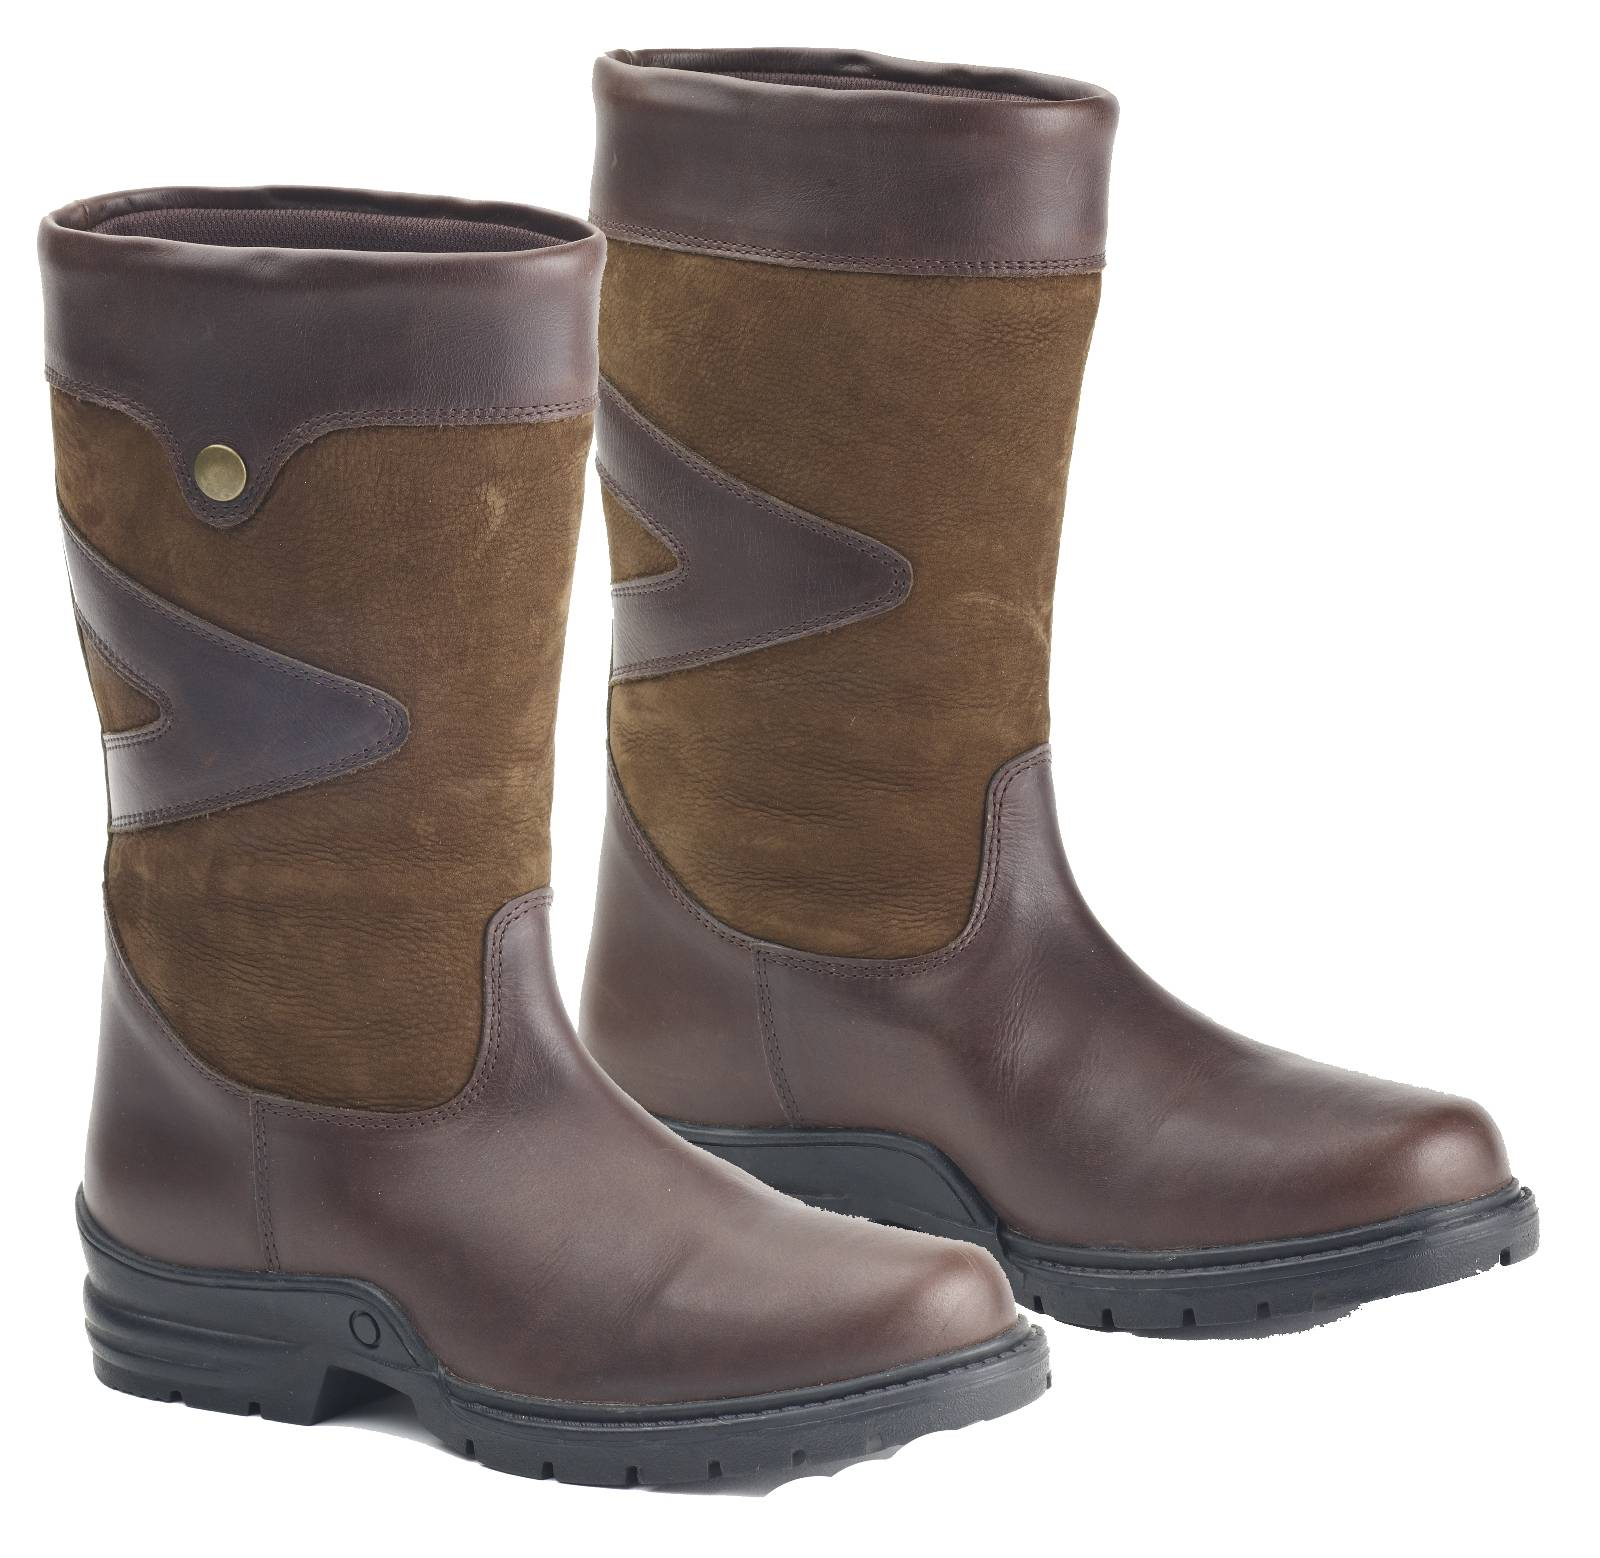 Ovation Kade Country Boots - Ladies